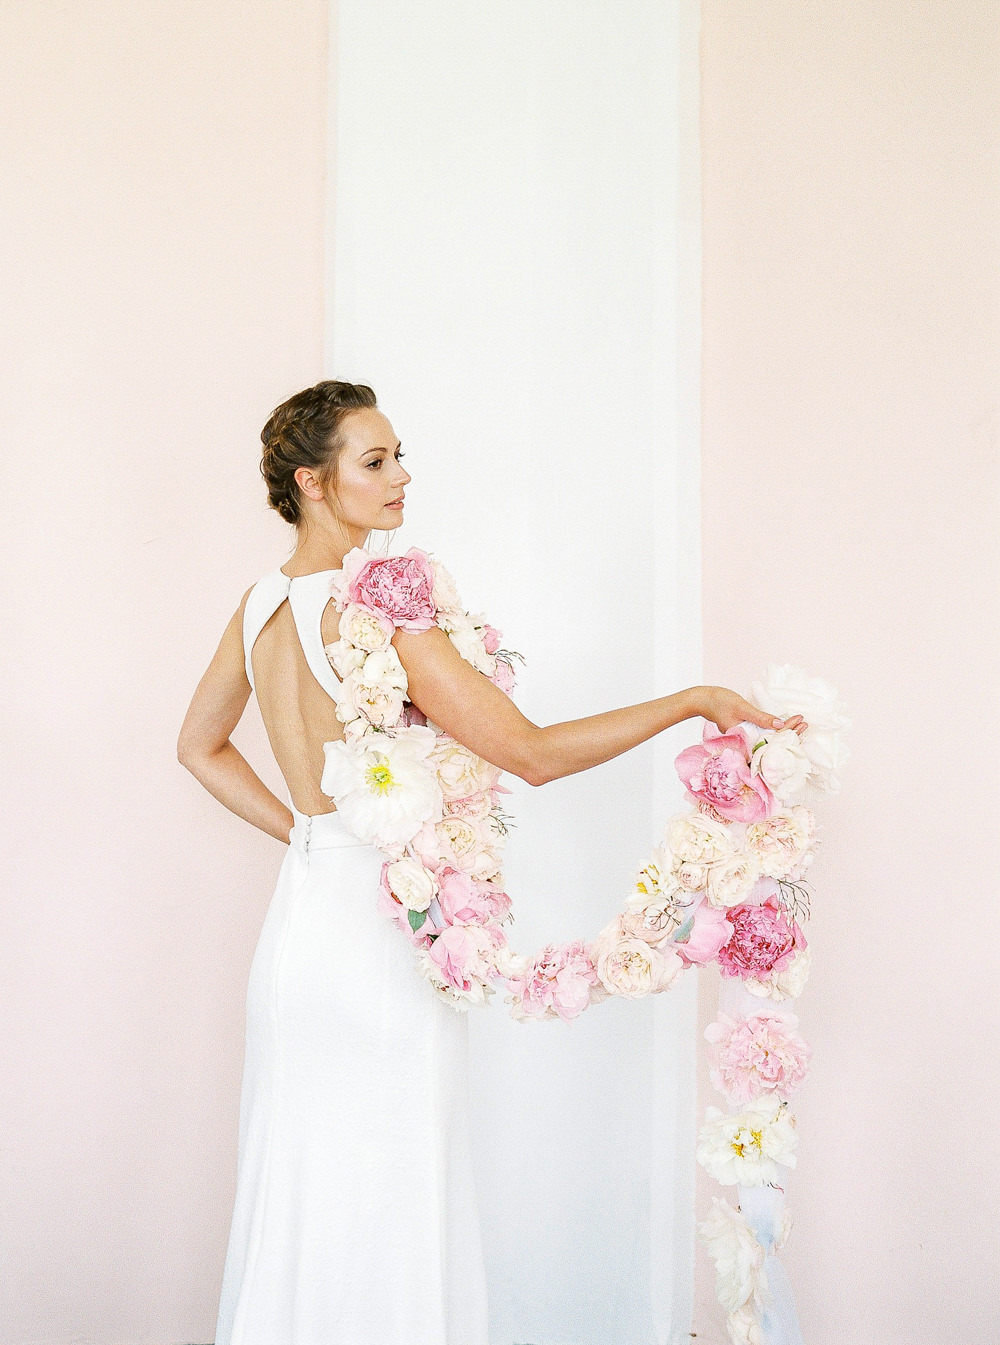 Cool bride with unique florals